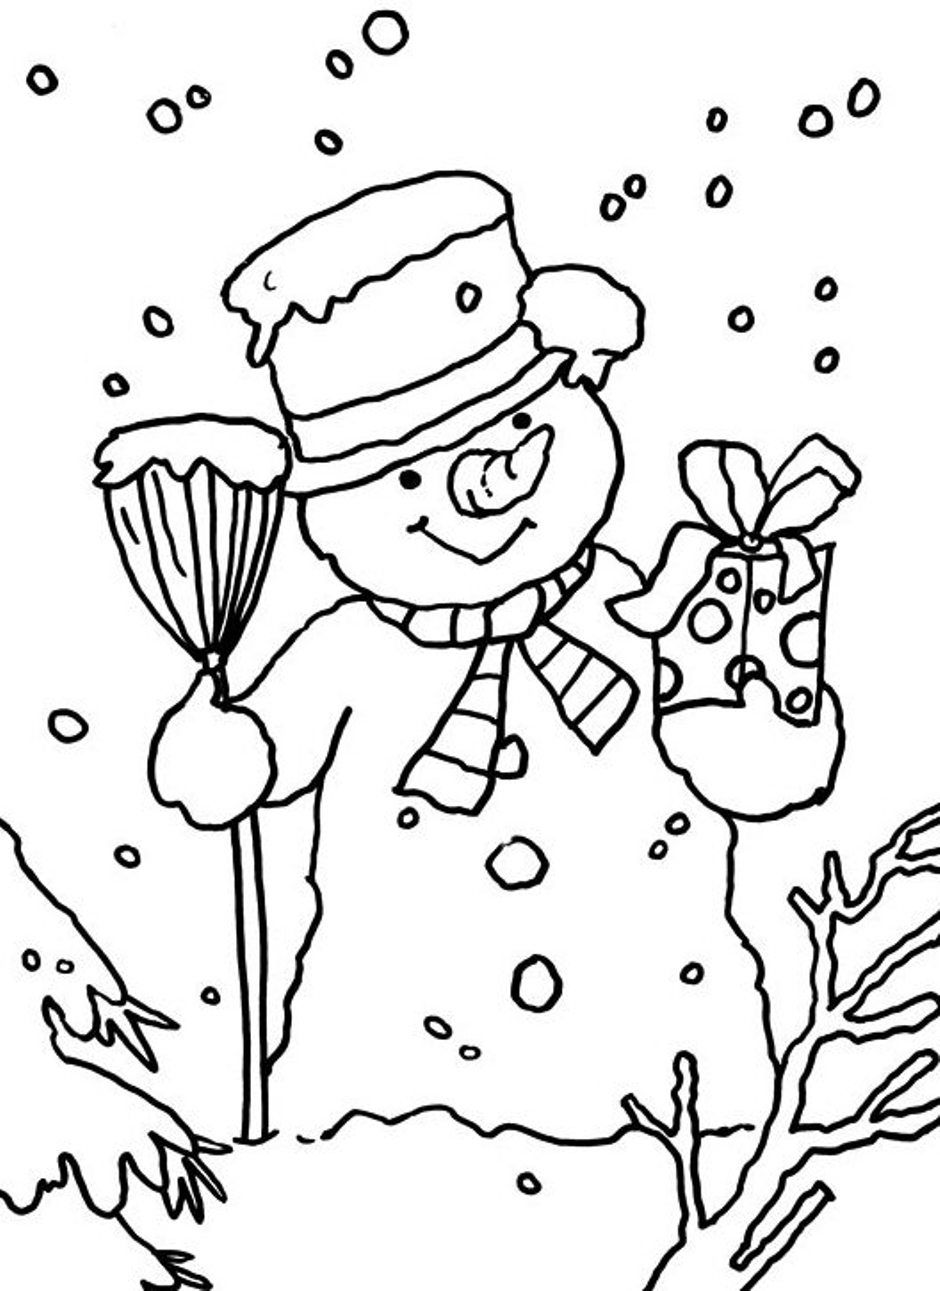 free printable winter scenes snow scene coloring page lessons worksheets and activities winter scenes printable free